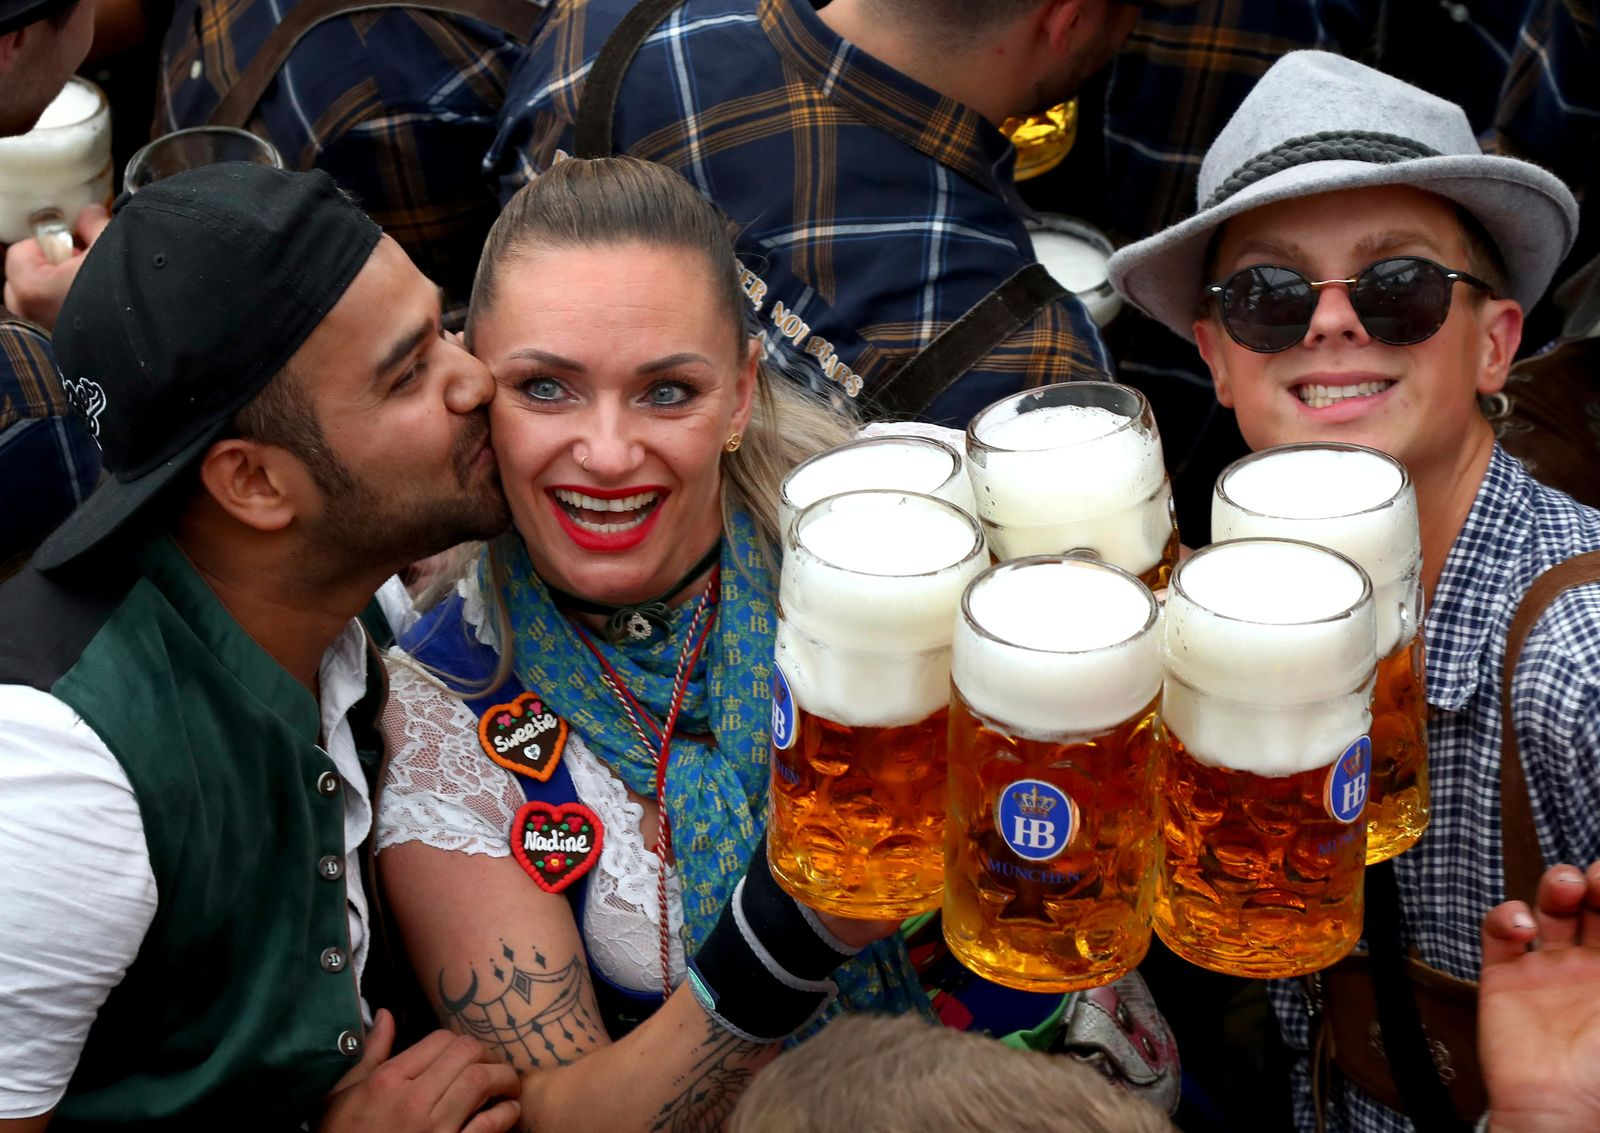 A waitress is kissed by a guest as she holds glasses of beer during the opening of the 186th 'Oktoberfest' beer festival in Munich, Germany, Saturday, Sept. 21, 2019. (AP Photo/Matthias Schrader)